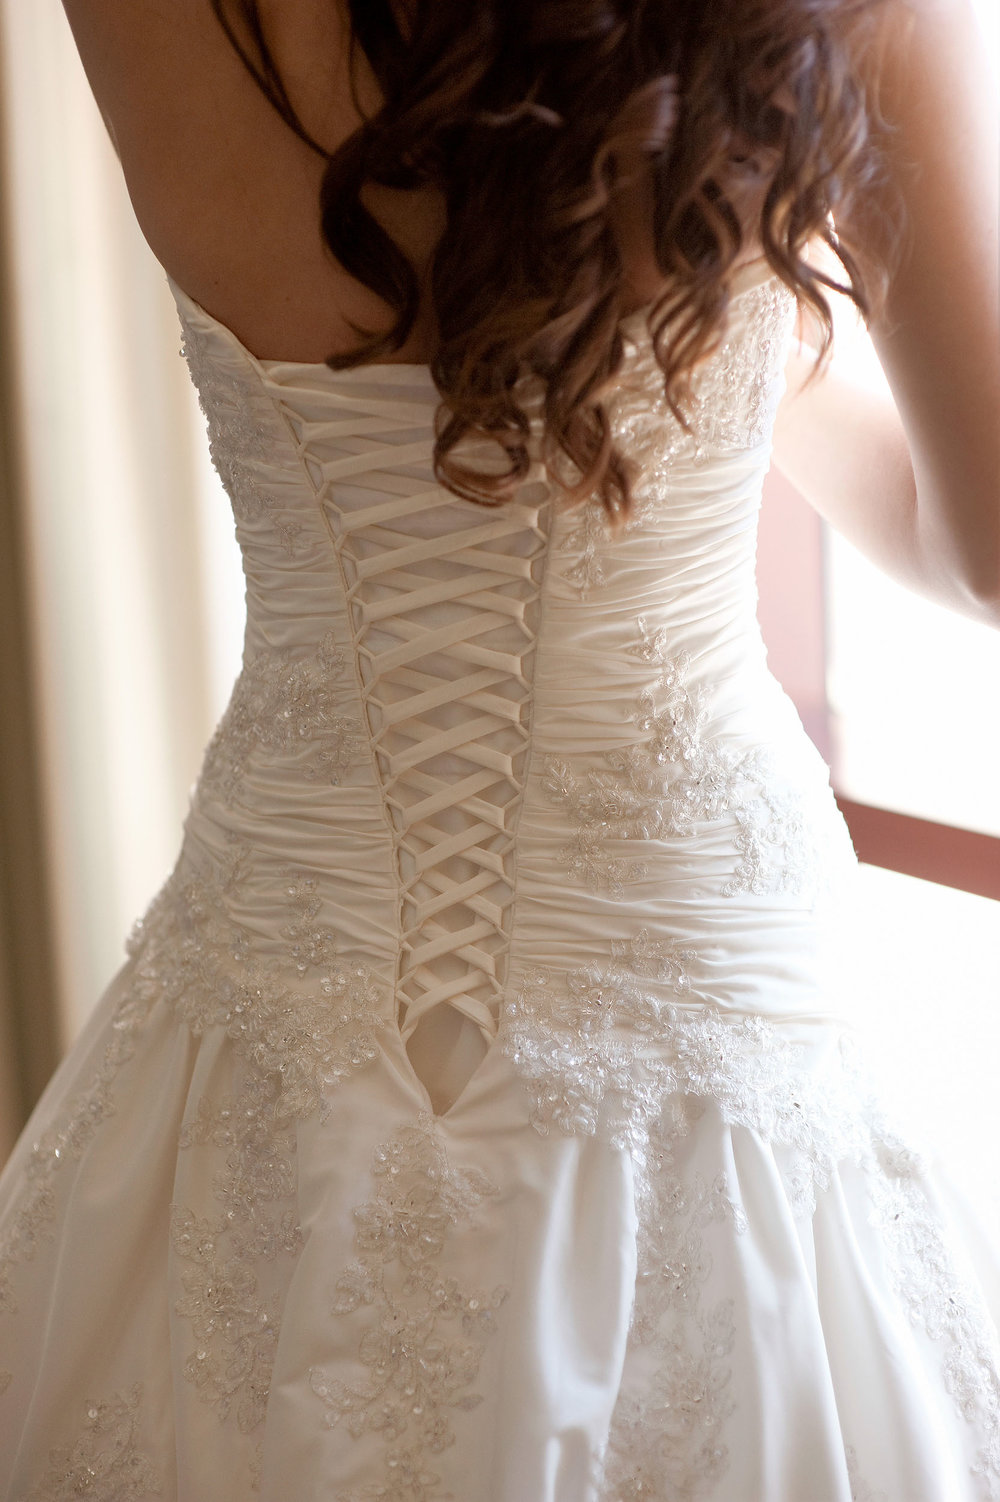 Lacing on back of bride's wedding dress at Pechanga Resort & Casino in Temecula.